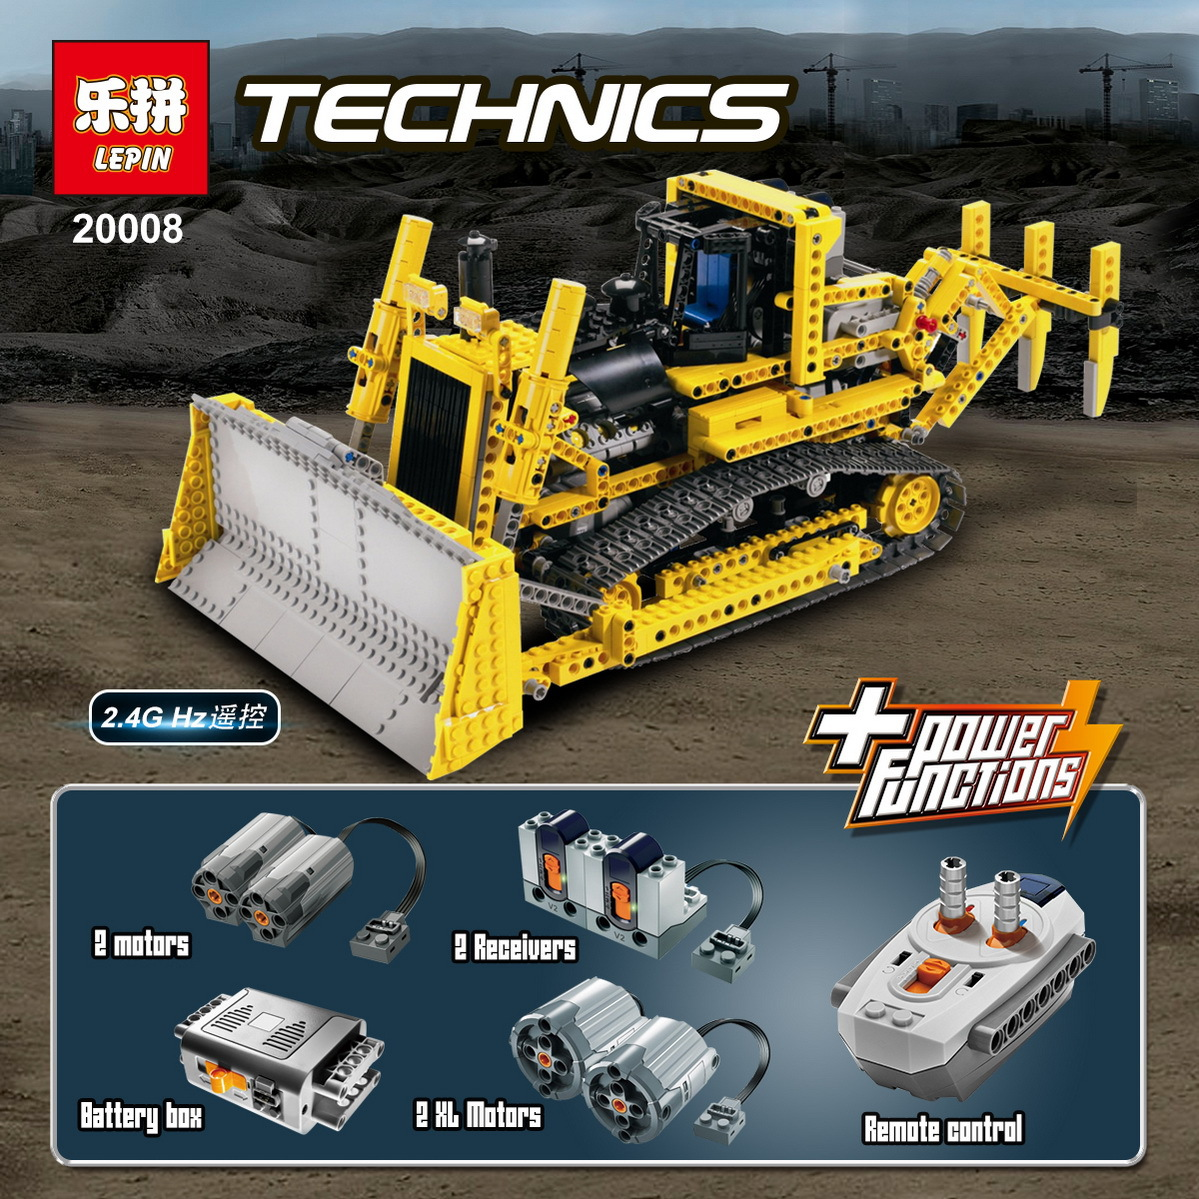 DHL LEPIN 20008 Technic Series Remote Contro the bulldozer Model Assembling Building block Bricks kits Compatible